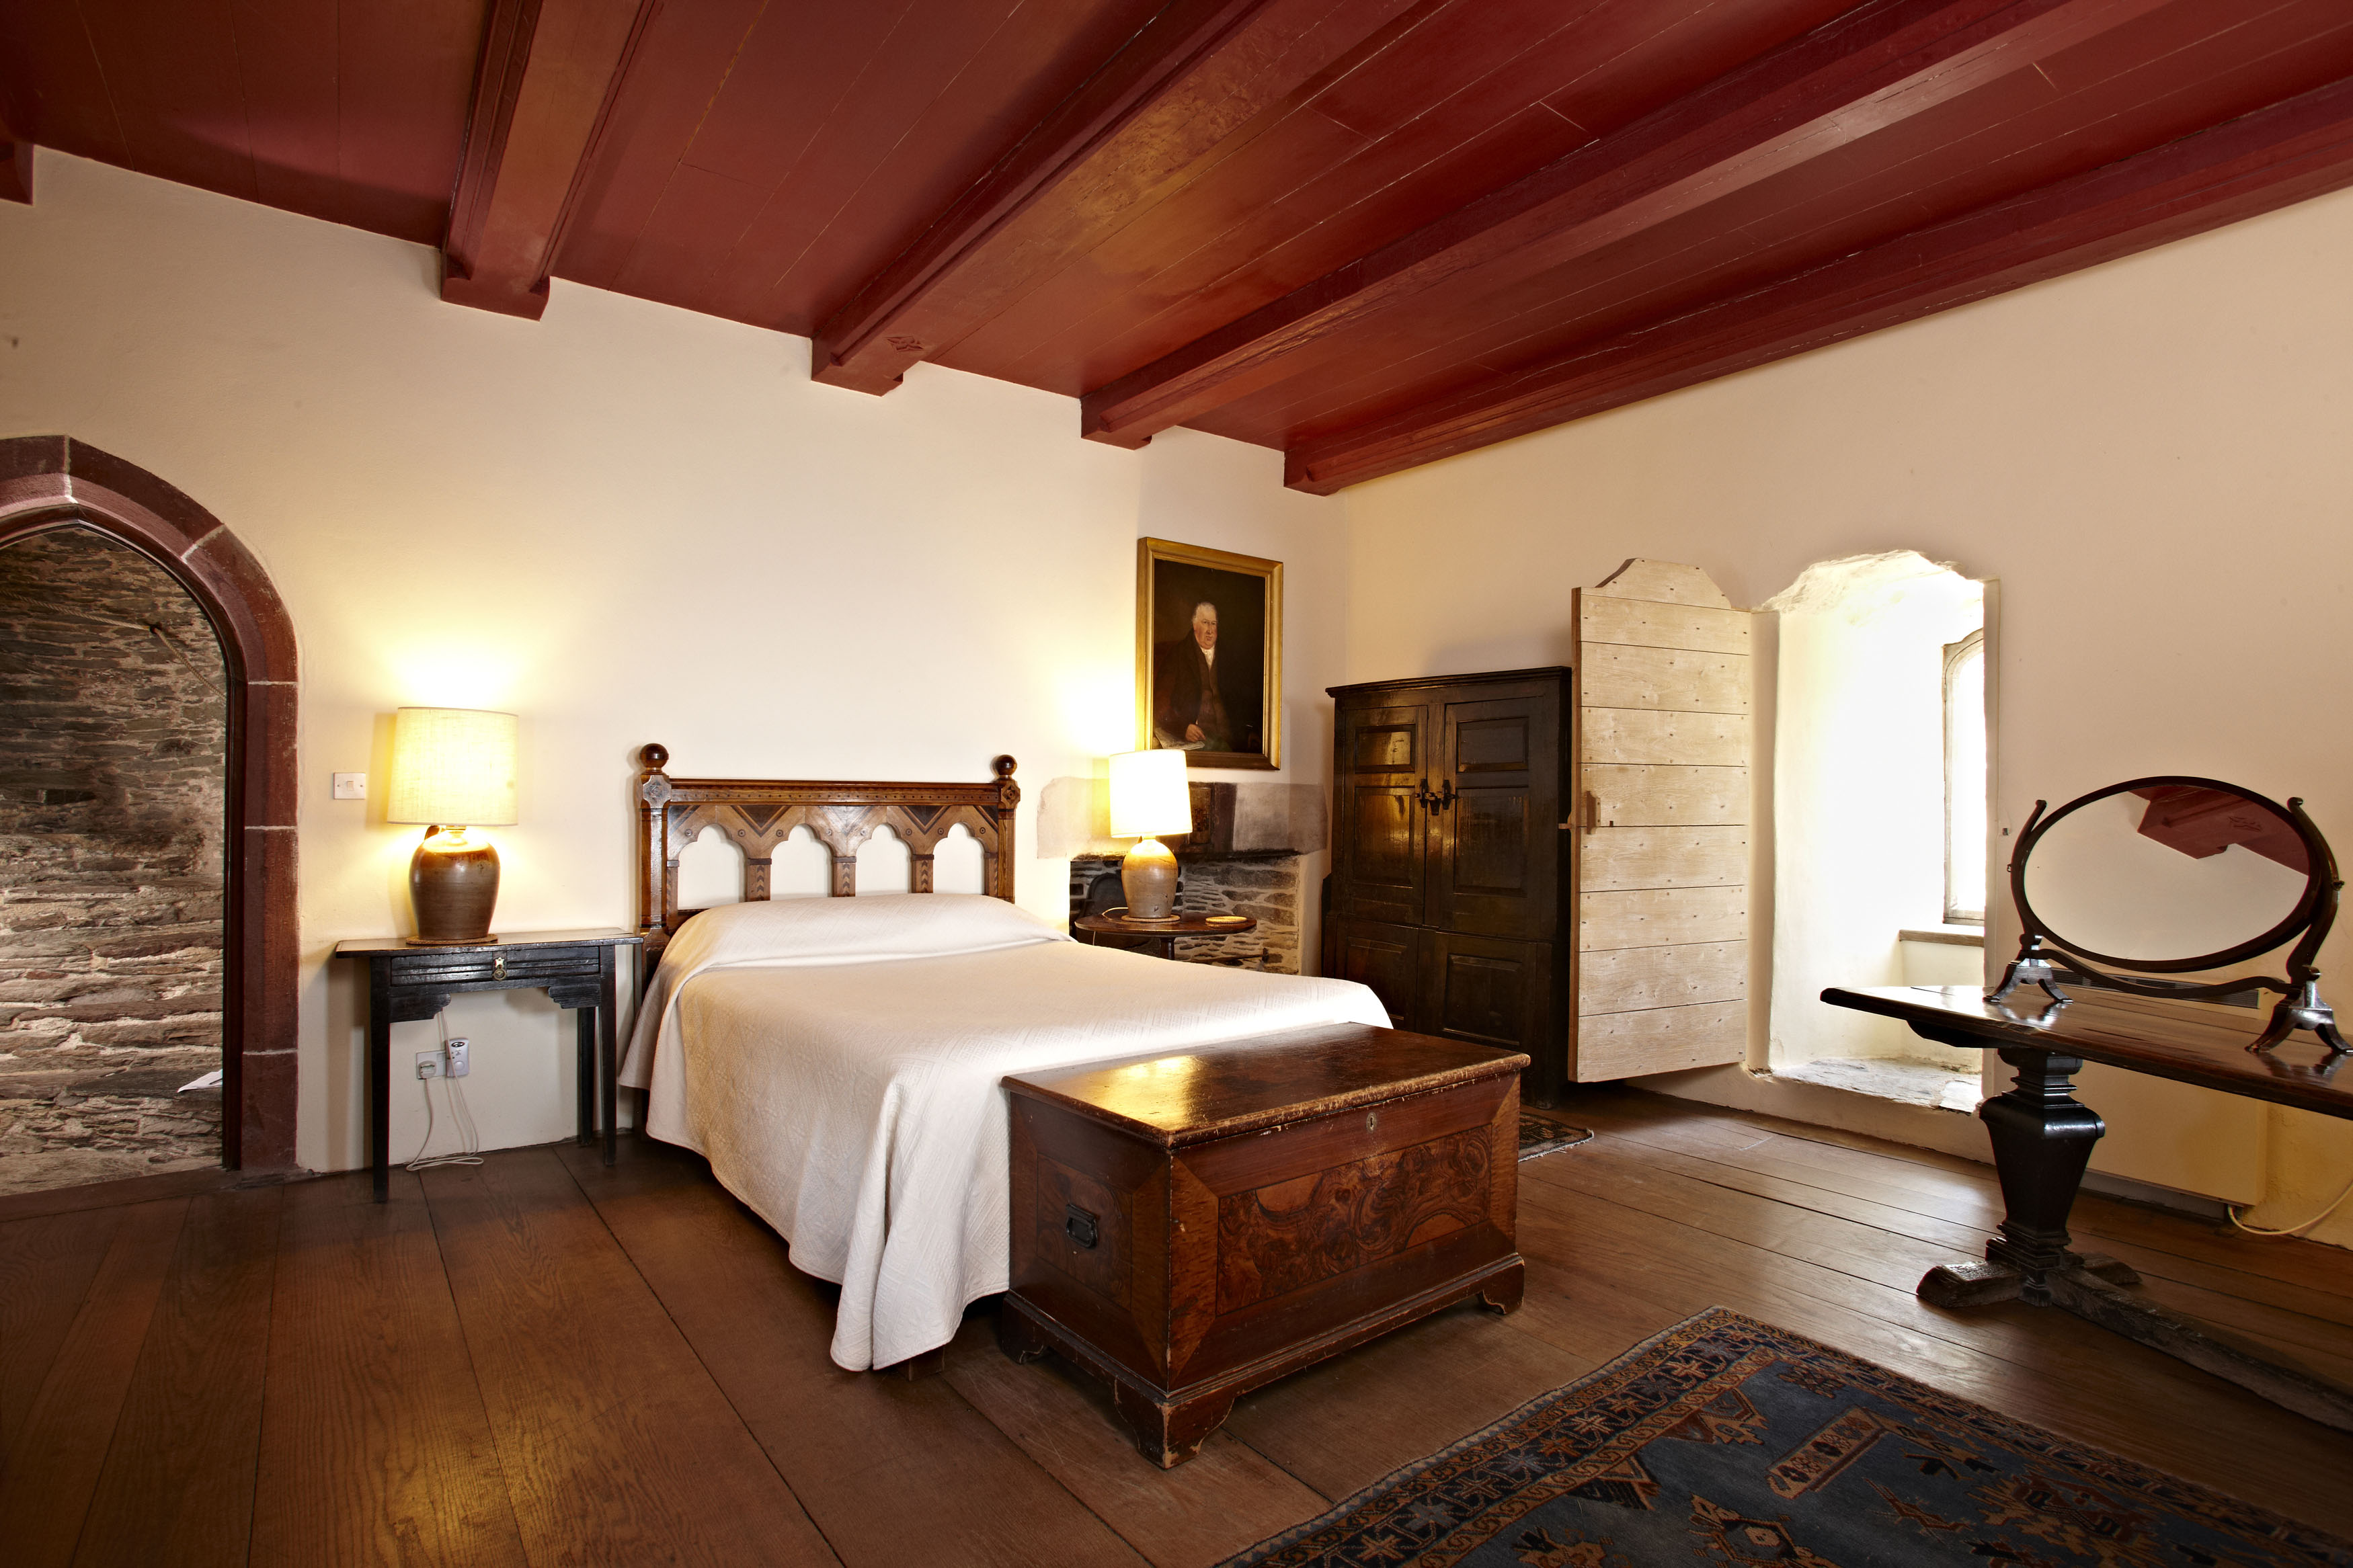 Kingswear-Castle-Bedroom-f71b8a0